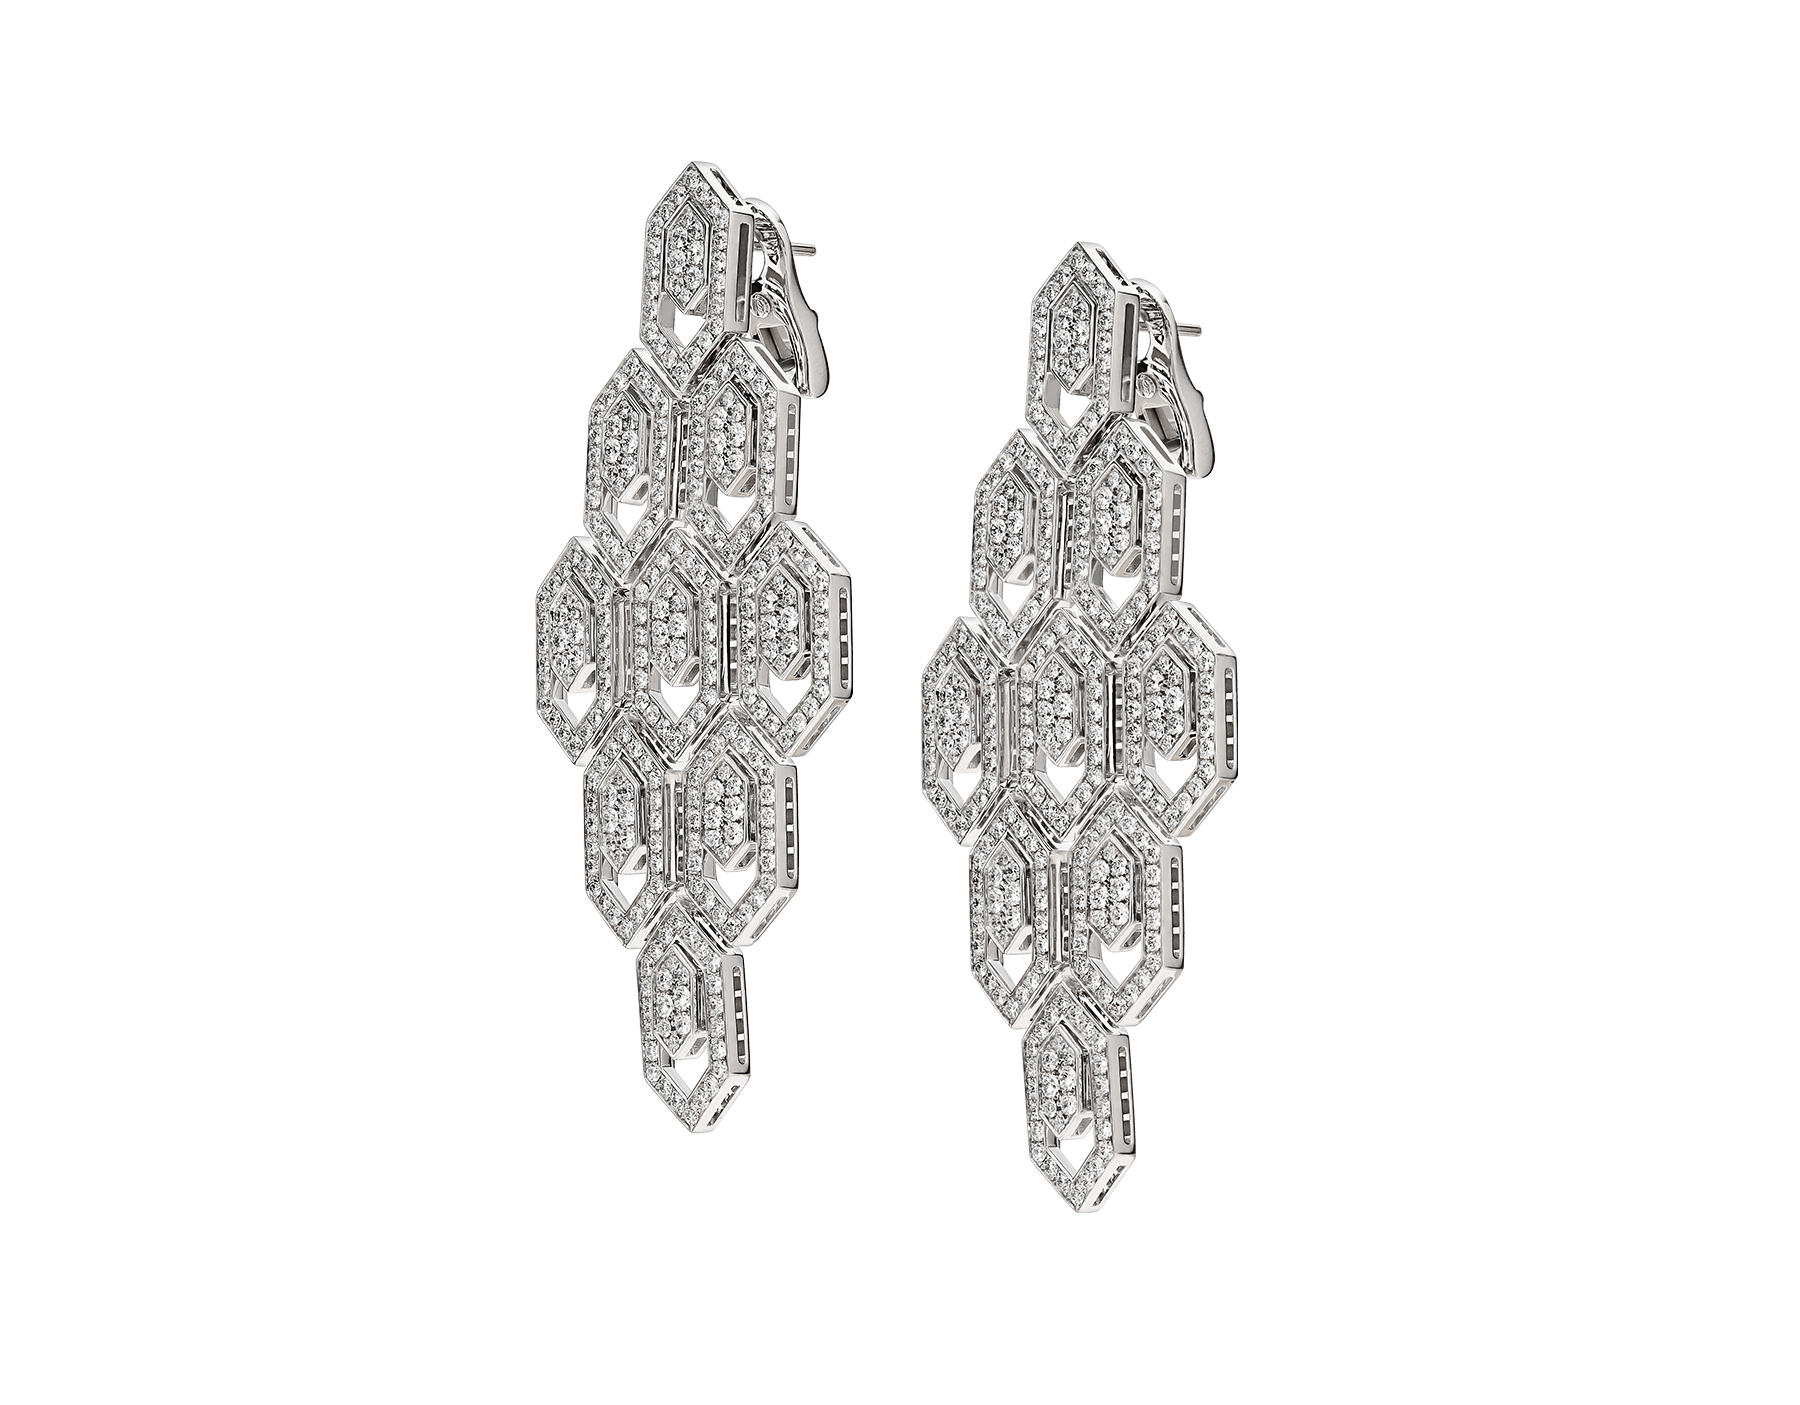 Serpenti earrings in 18 kt white gold, set with pavé diamonds. 353844 image 2